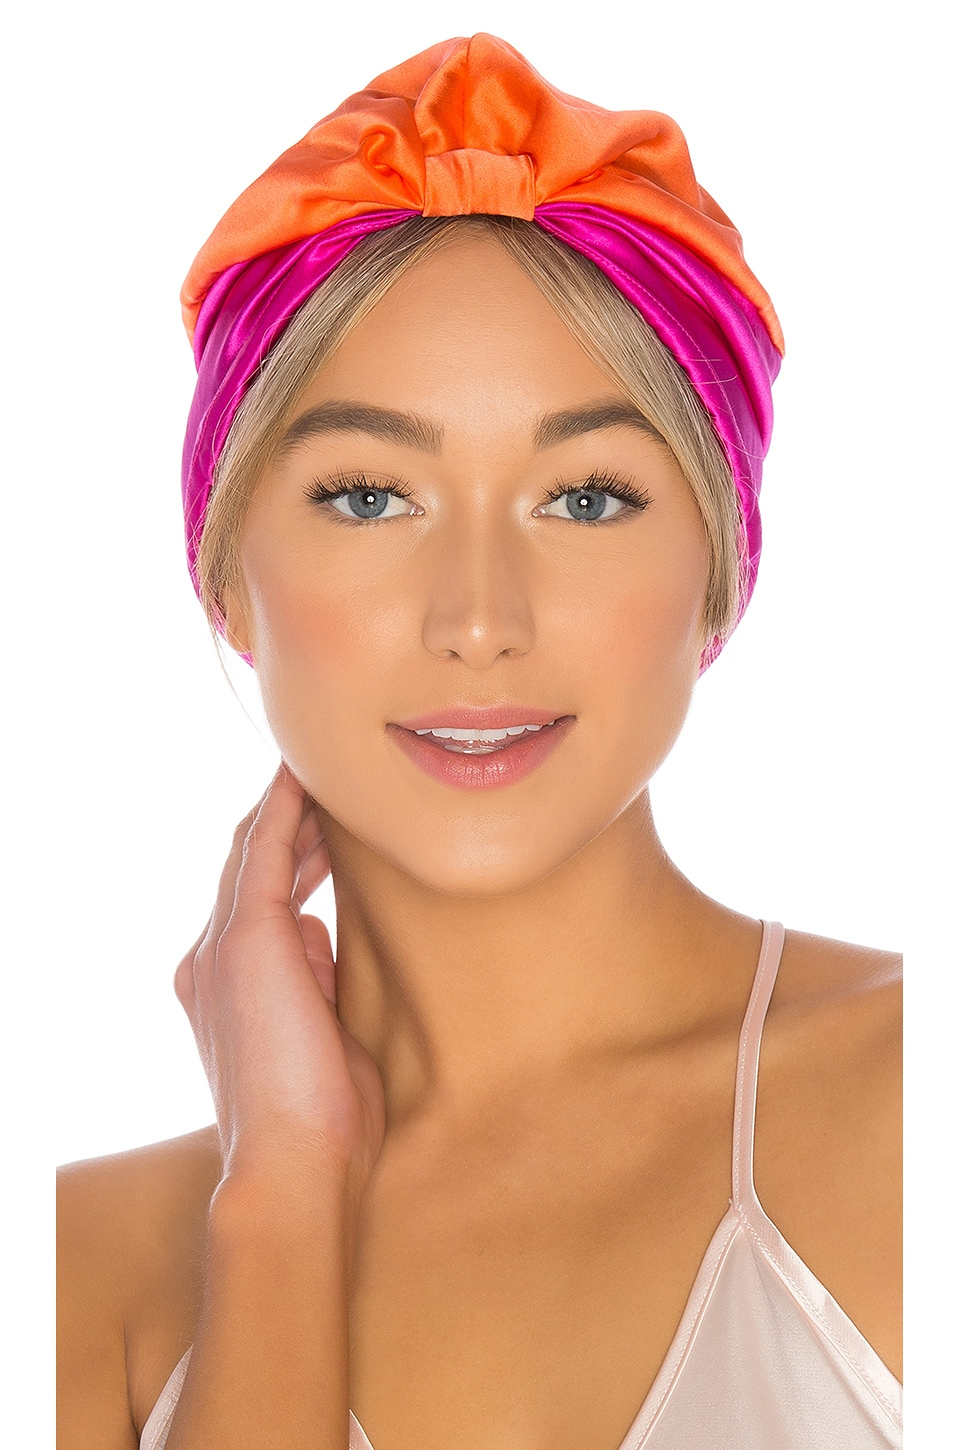 SILKE London Hair Wrap The Poppy in Cerise Pink & Orange